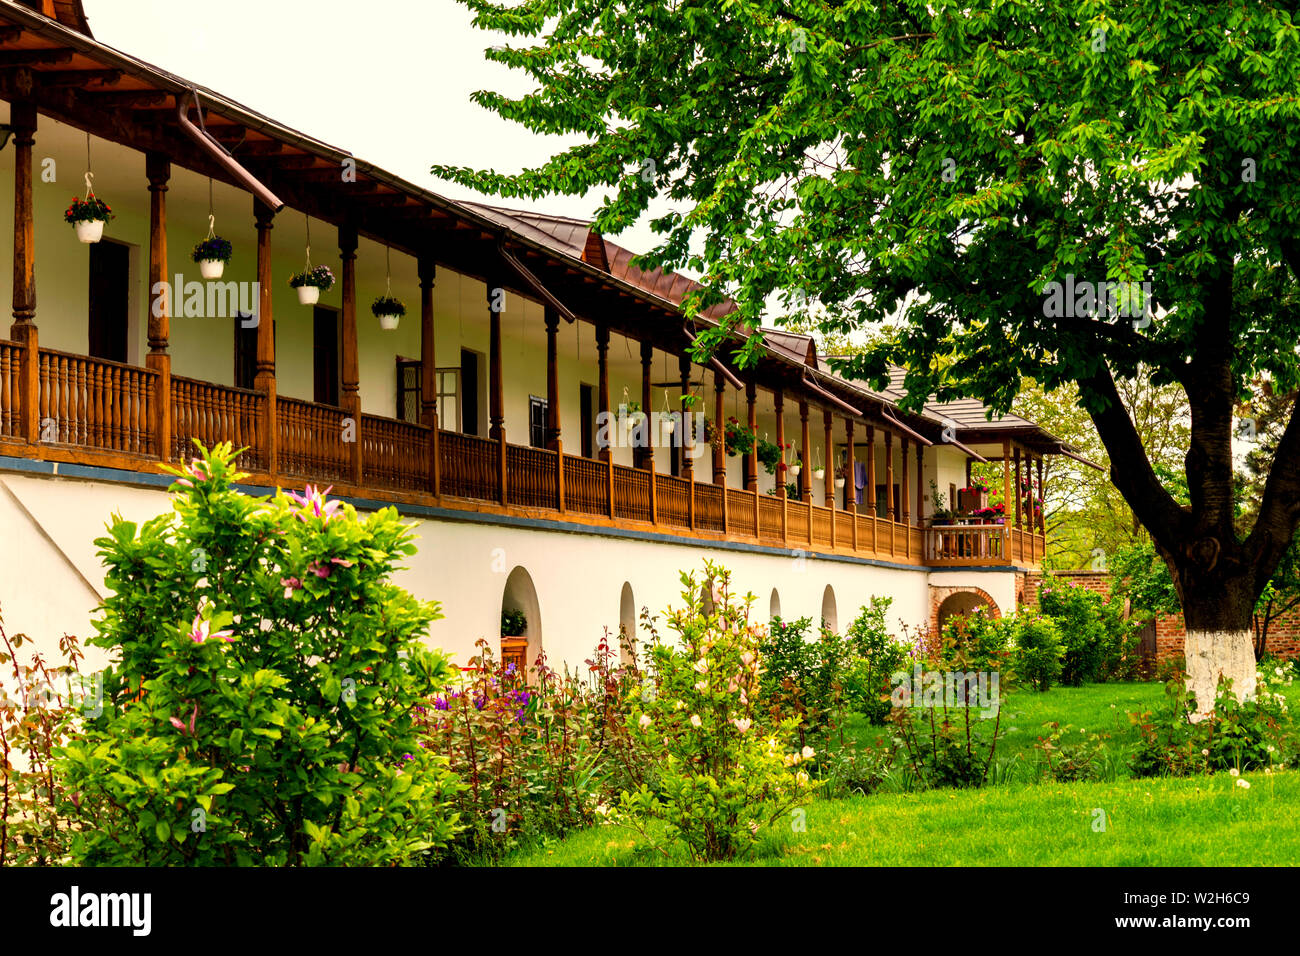 old style rustic house with laborious wood porch and front green garden tree Stock Photo